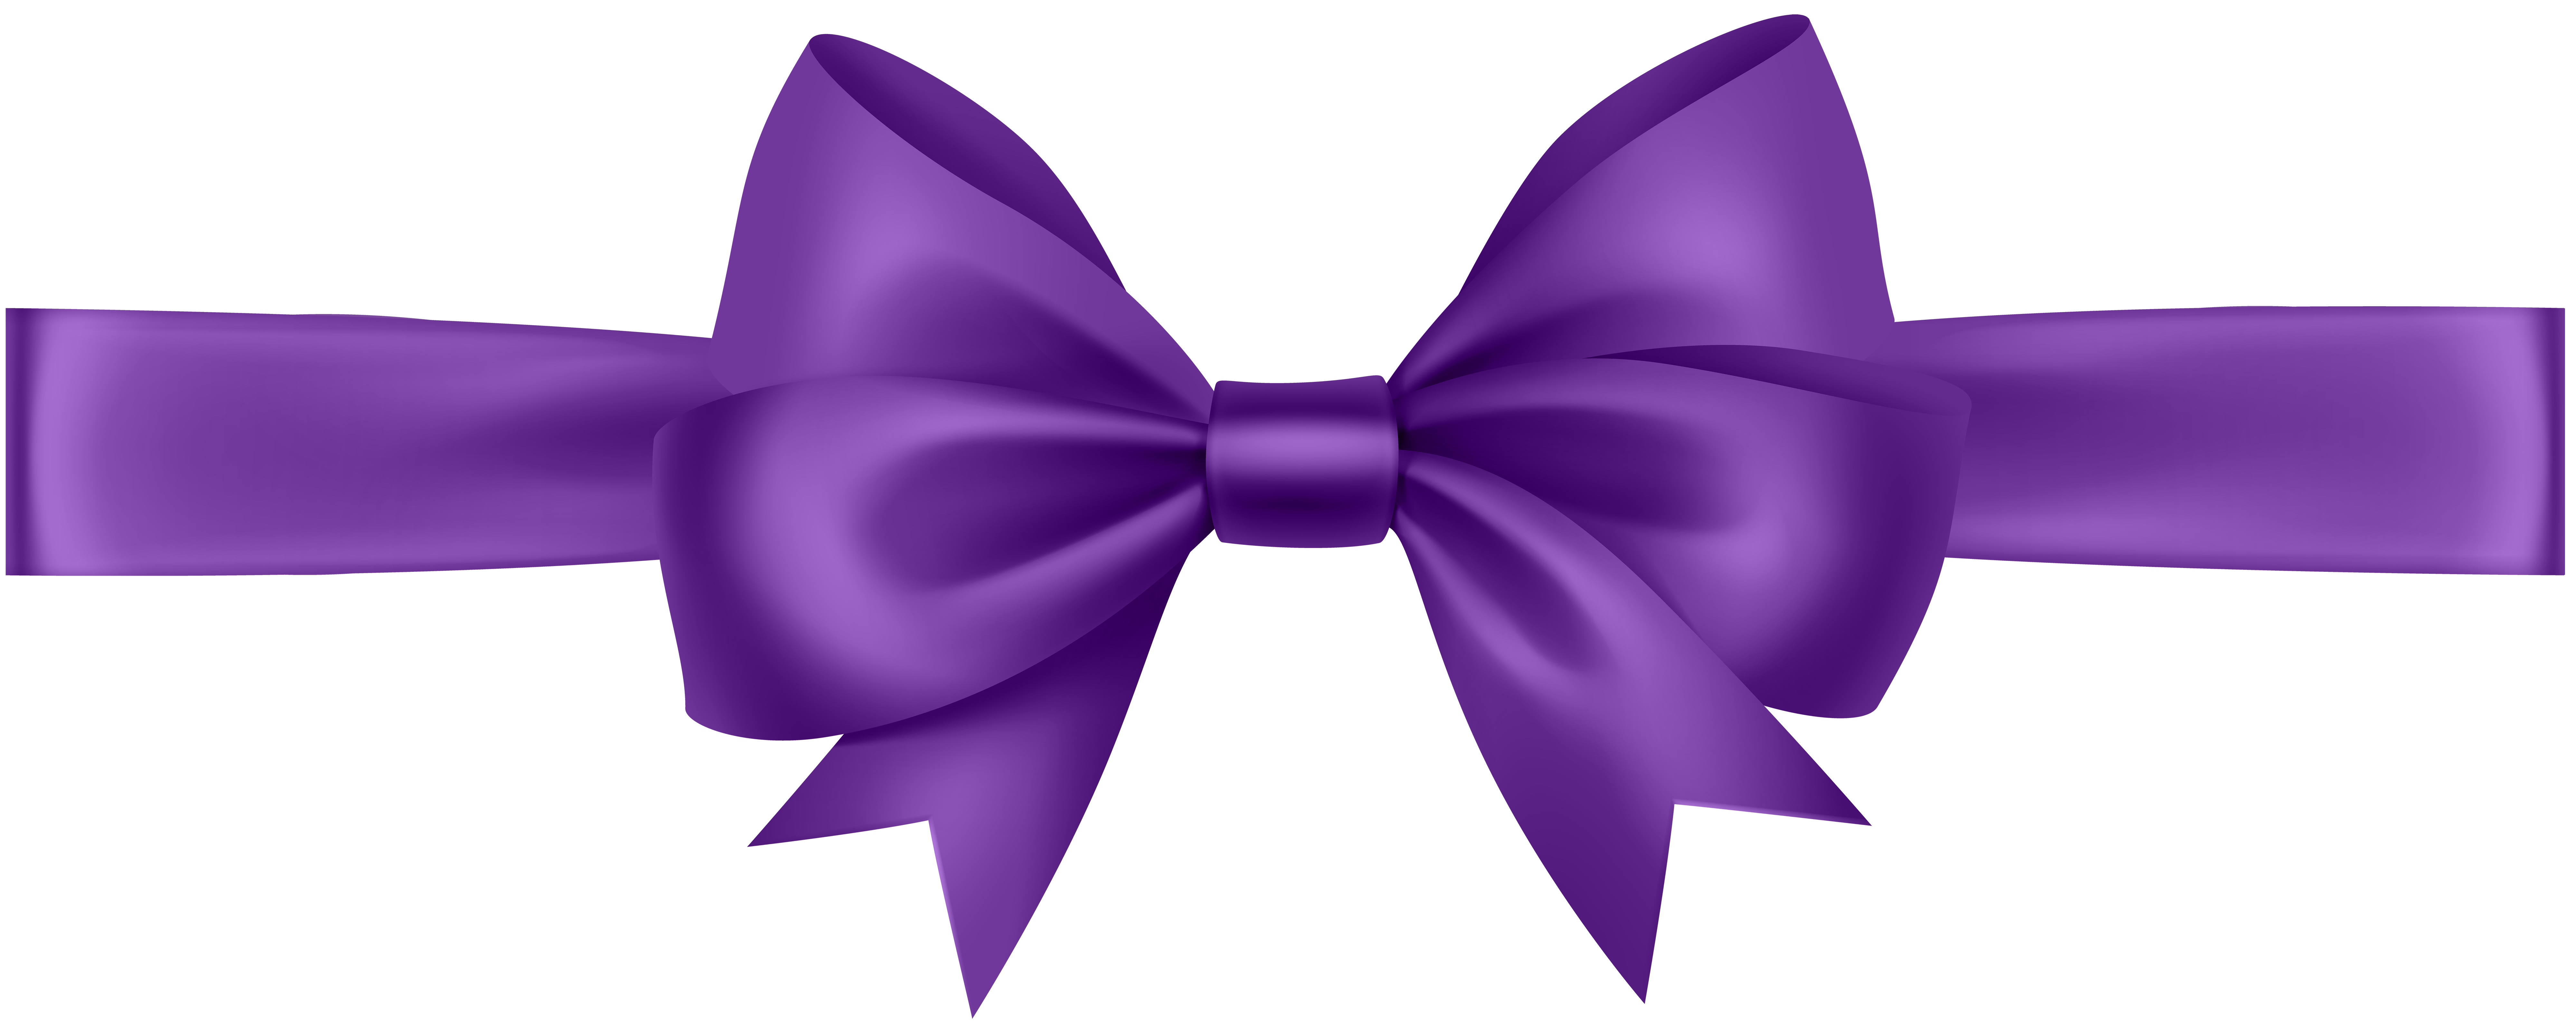 La o roxo png. Youtube clipart pastel